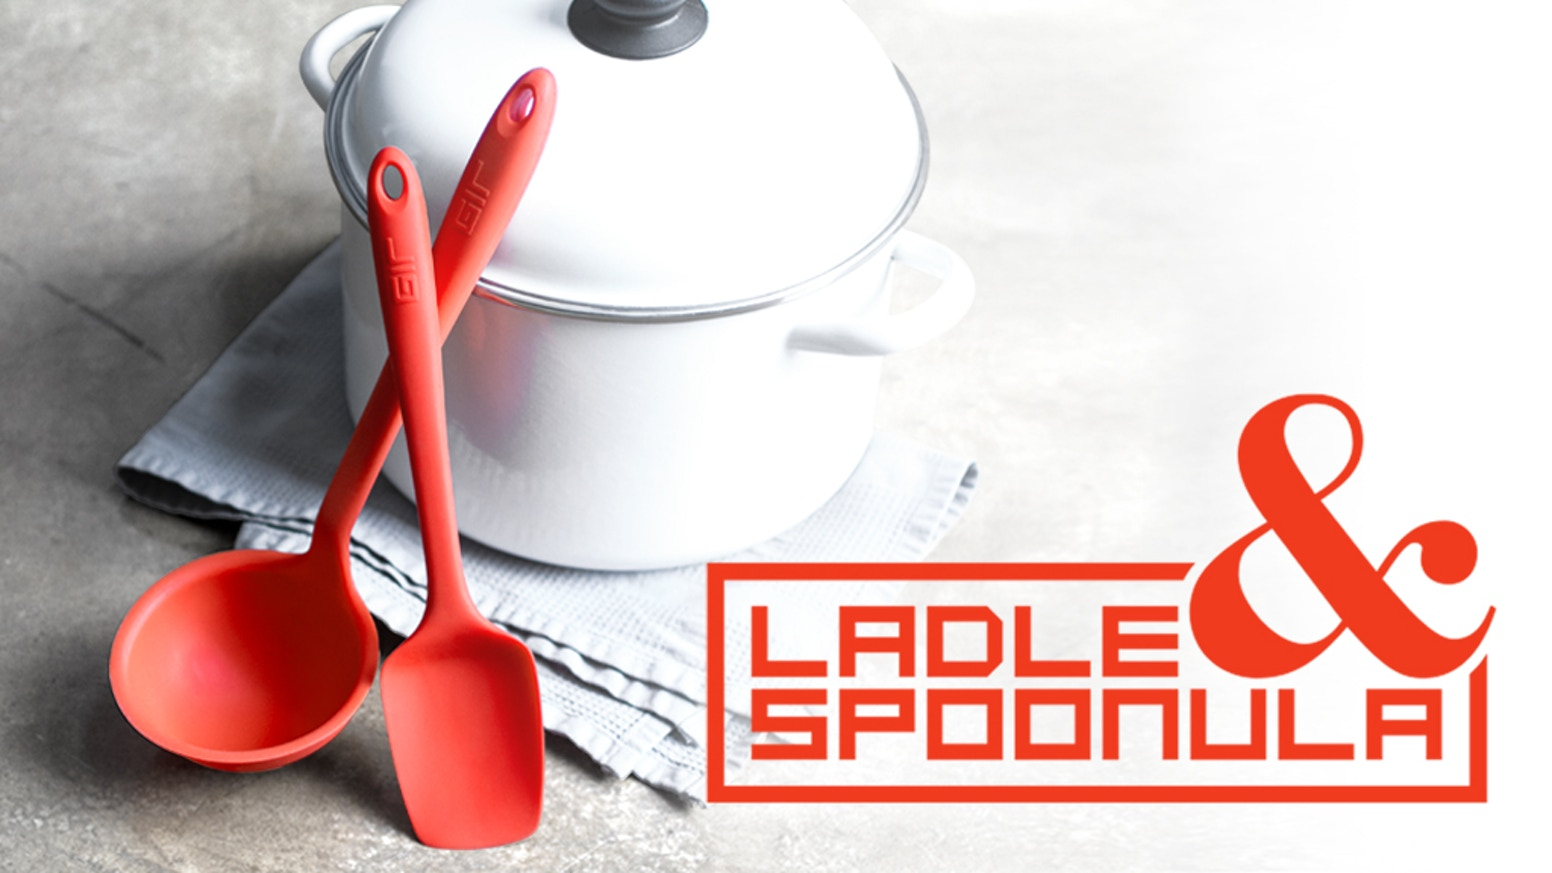 The ladle and spoonula you've been waiting for. Precision-pouring edge, perfect flexibility. Delivered in time for holiday gift-giving.